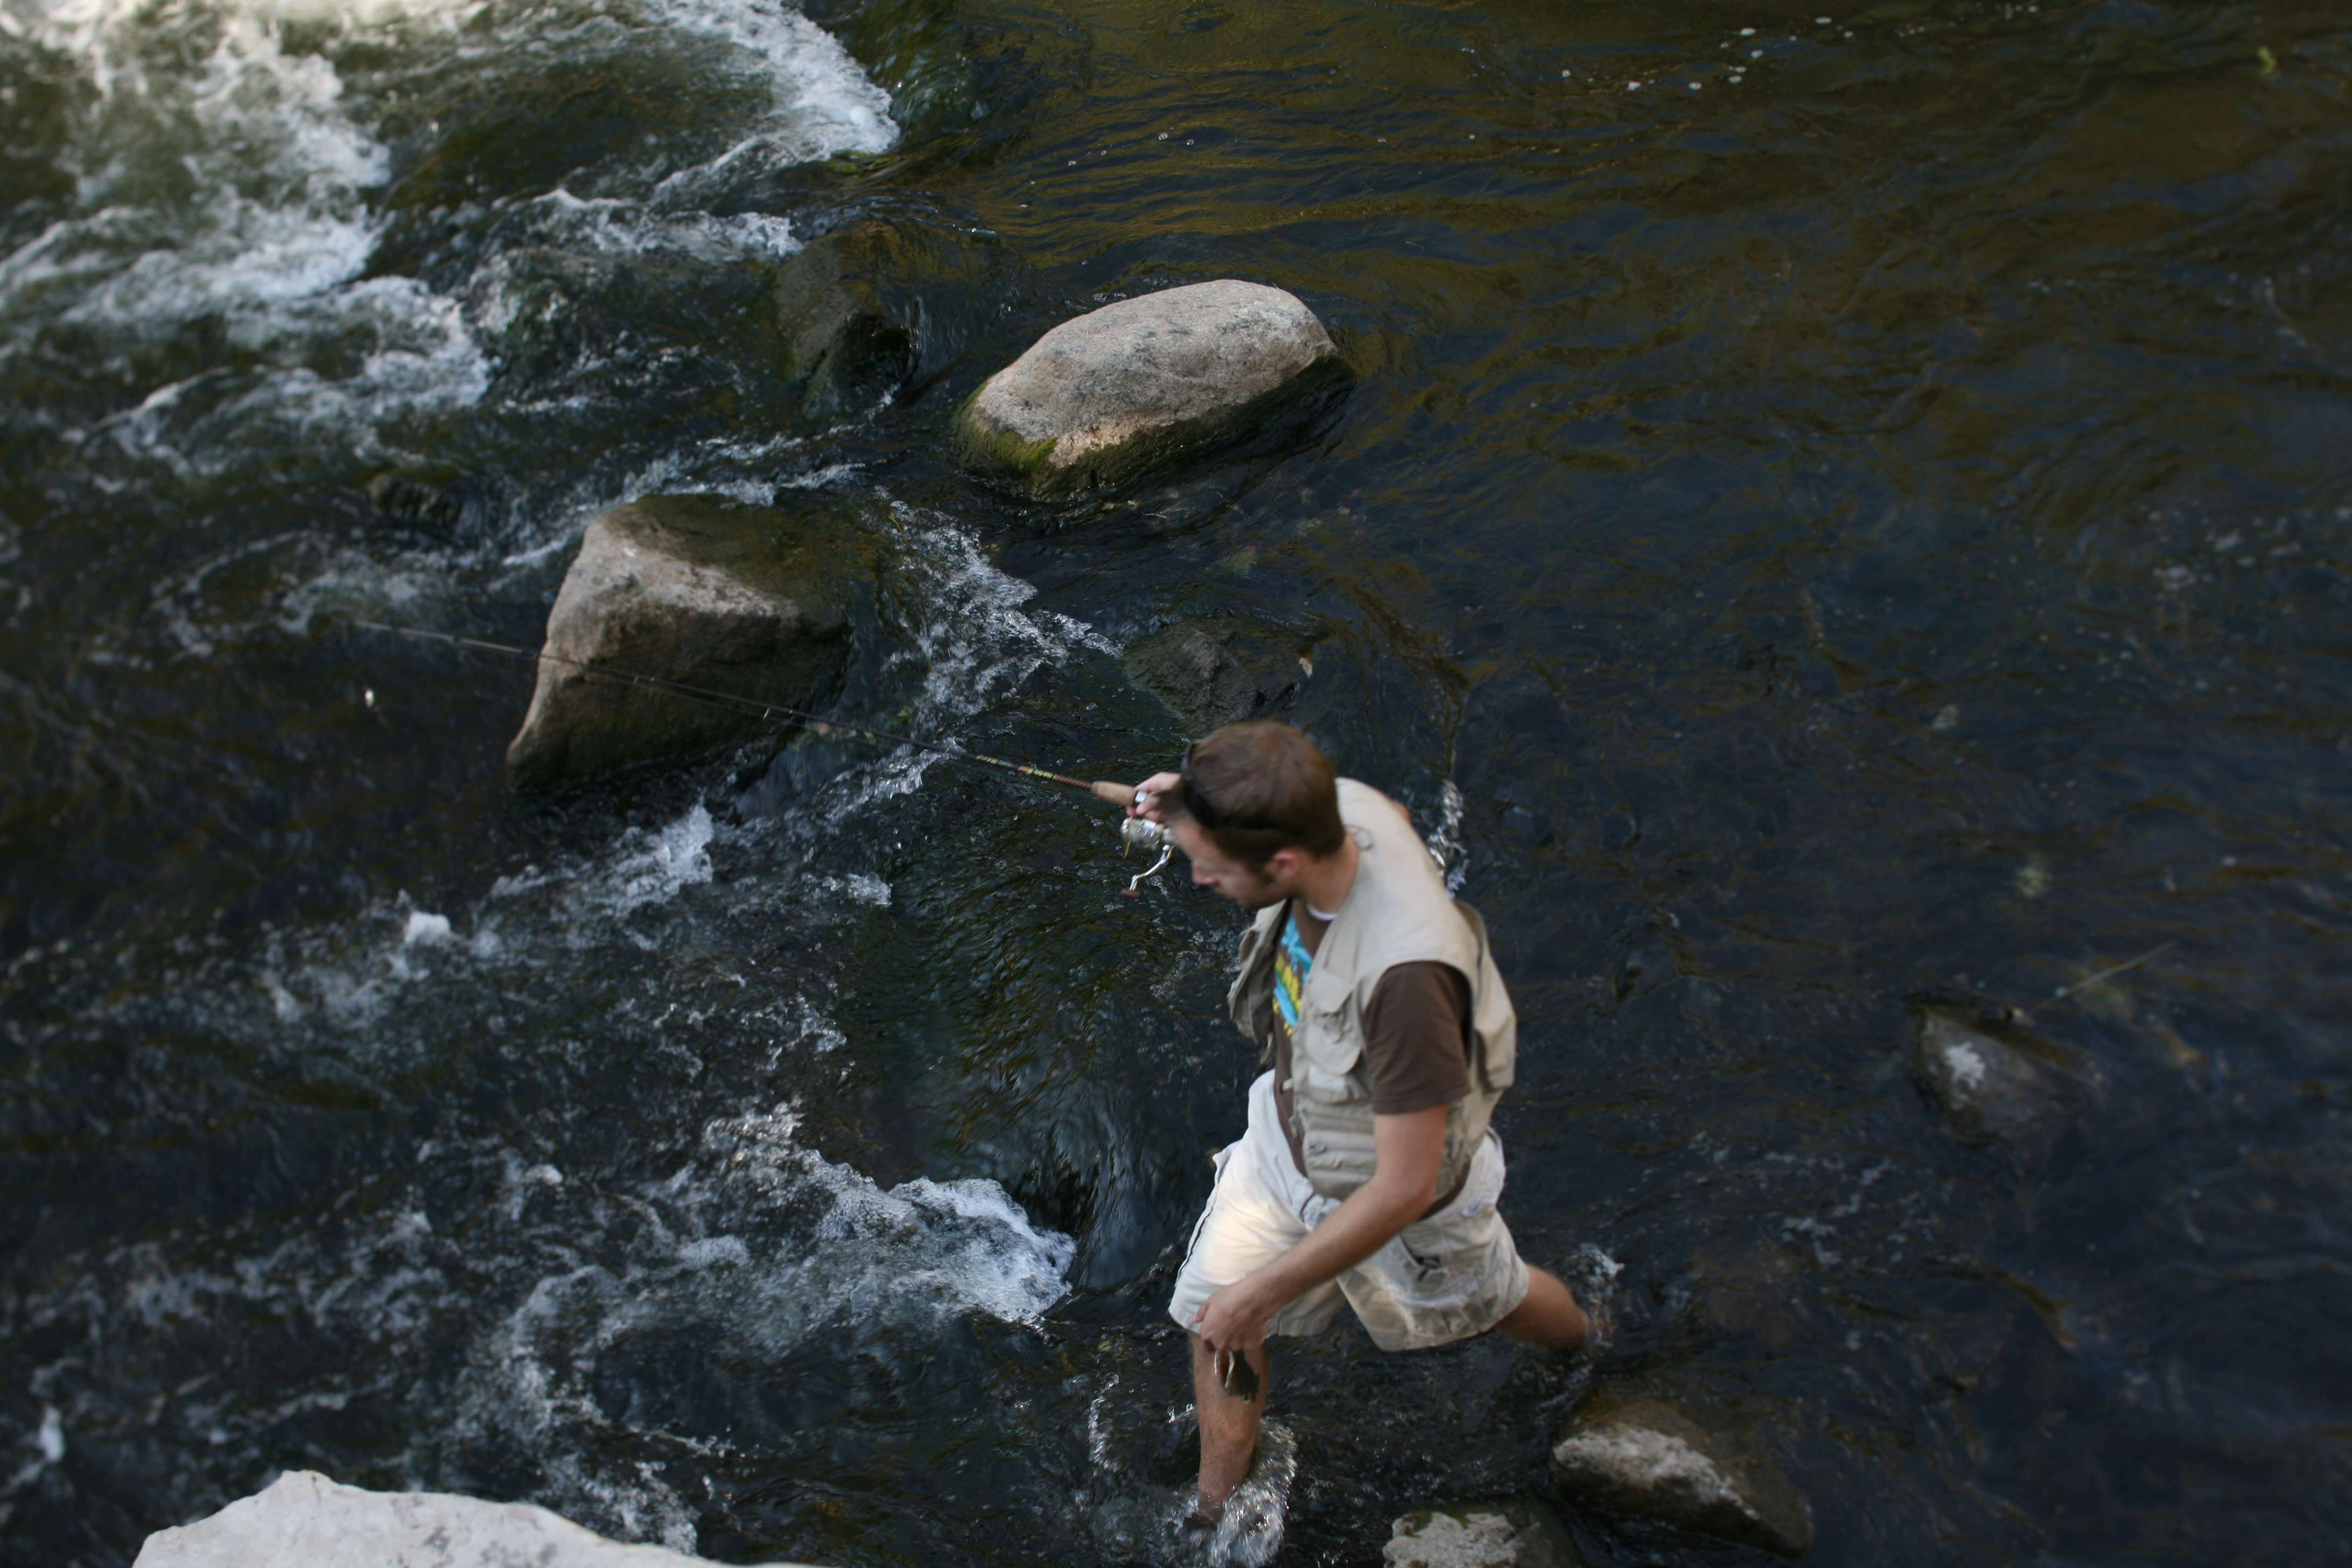 Man fishing on the Provo River